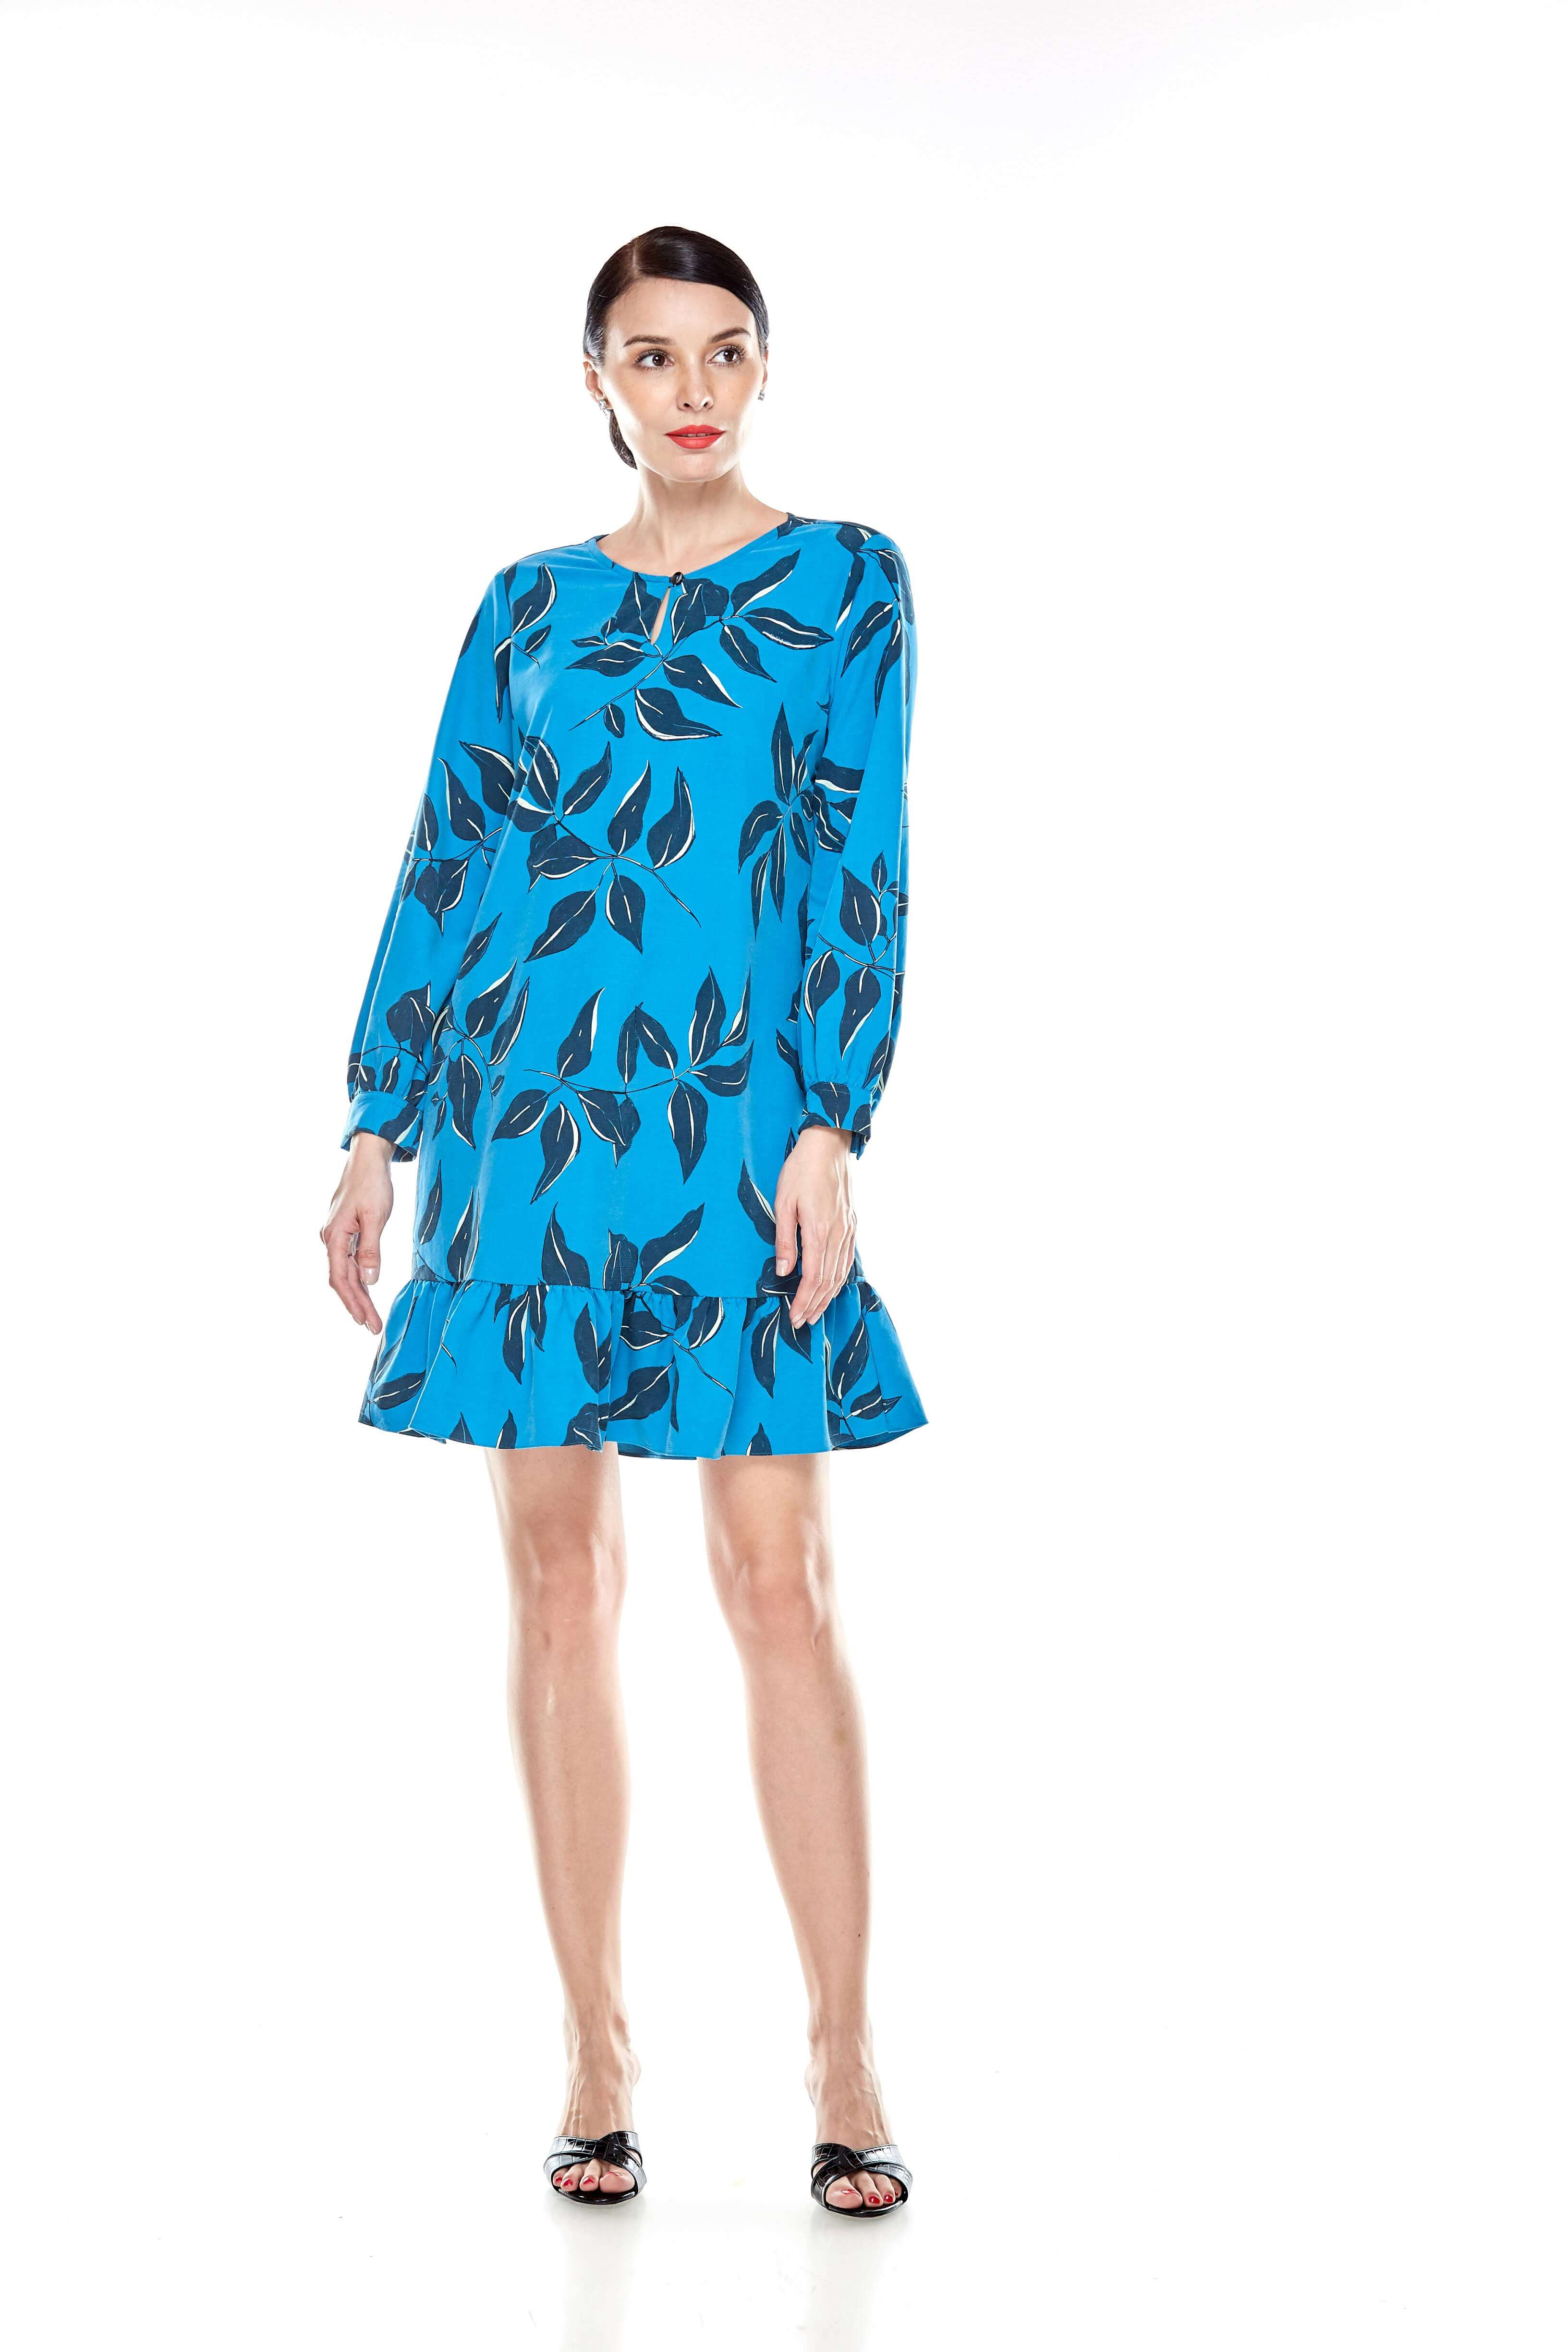 Mosaic Blue Printed Tunic With Bow Sleeves (8)